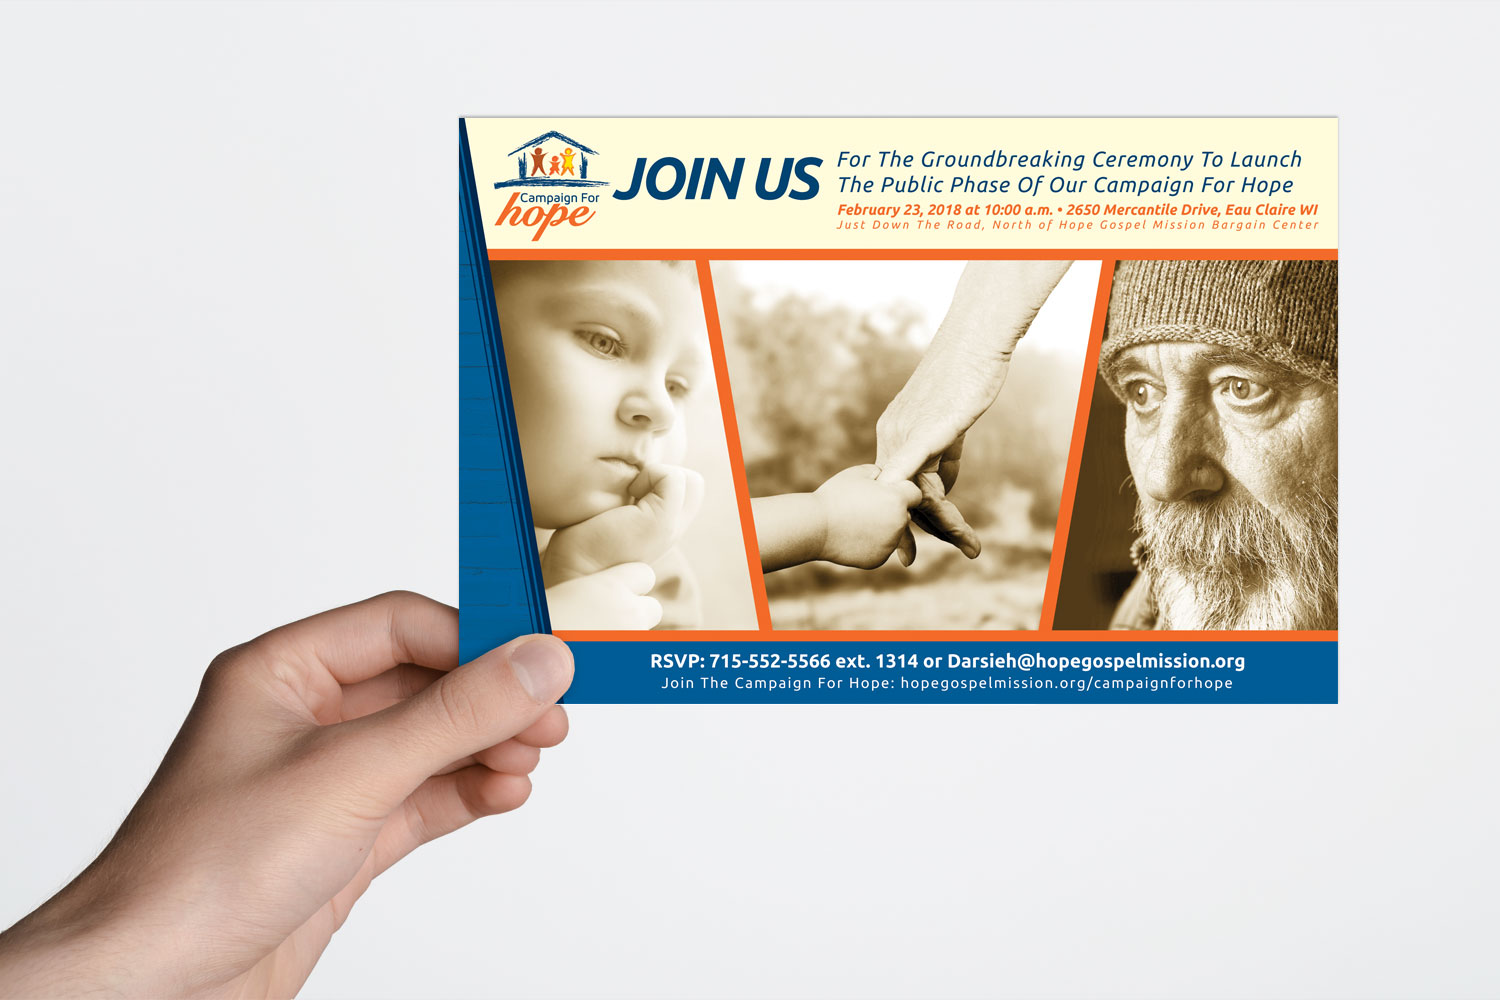 Campaign for Hope Groundbreaking Postcard